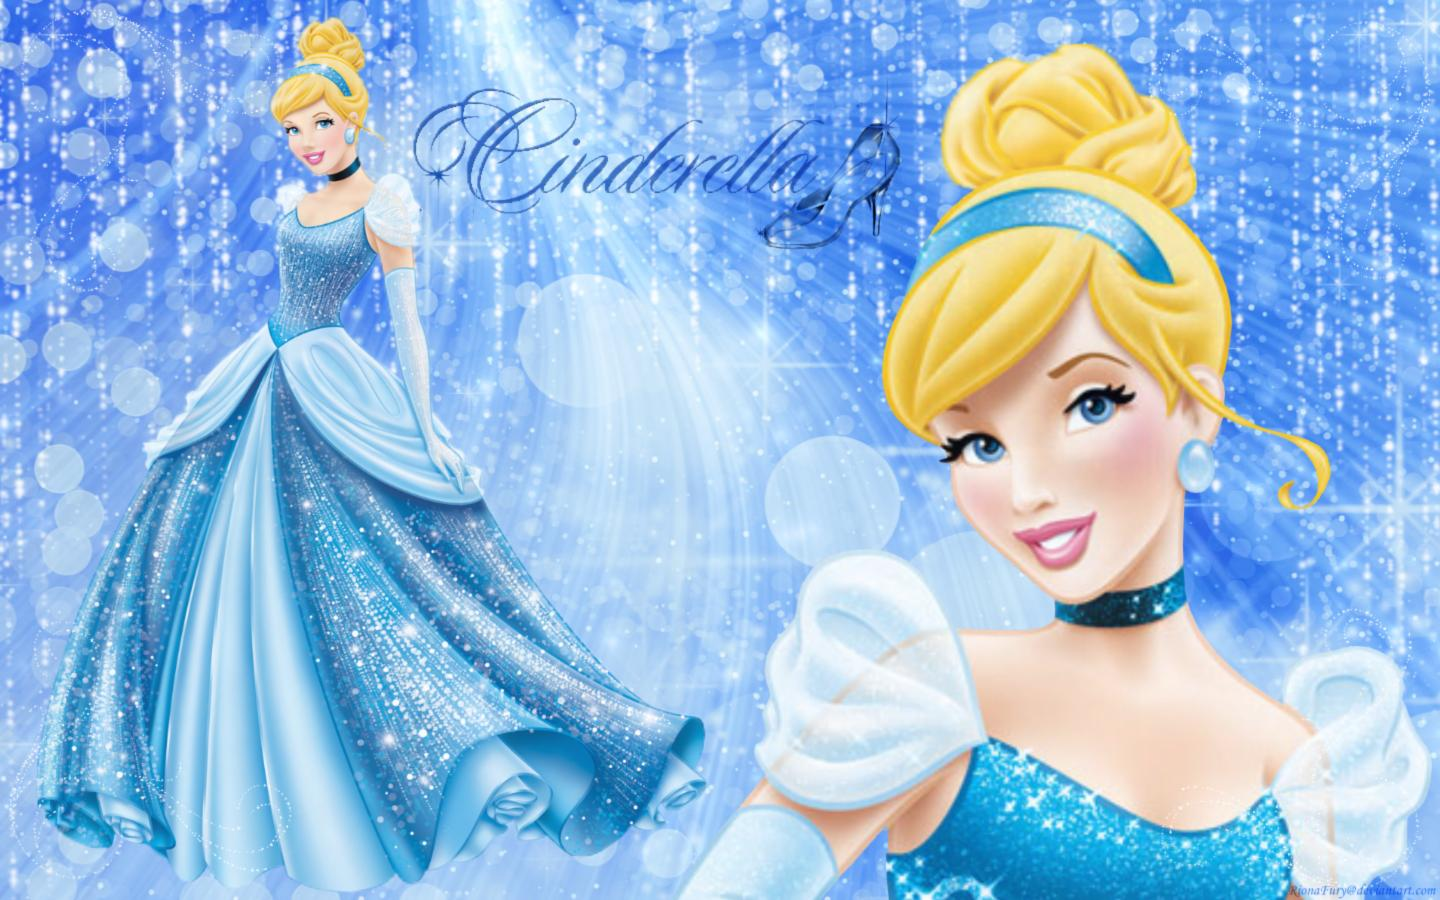 Download Cinderella Disney Princess Wallpaper HD